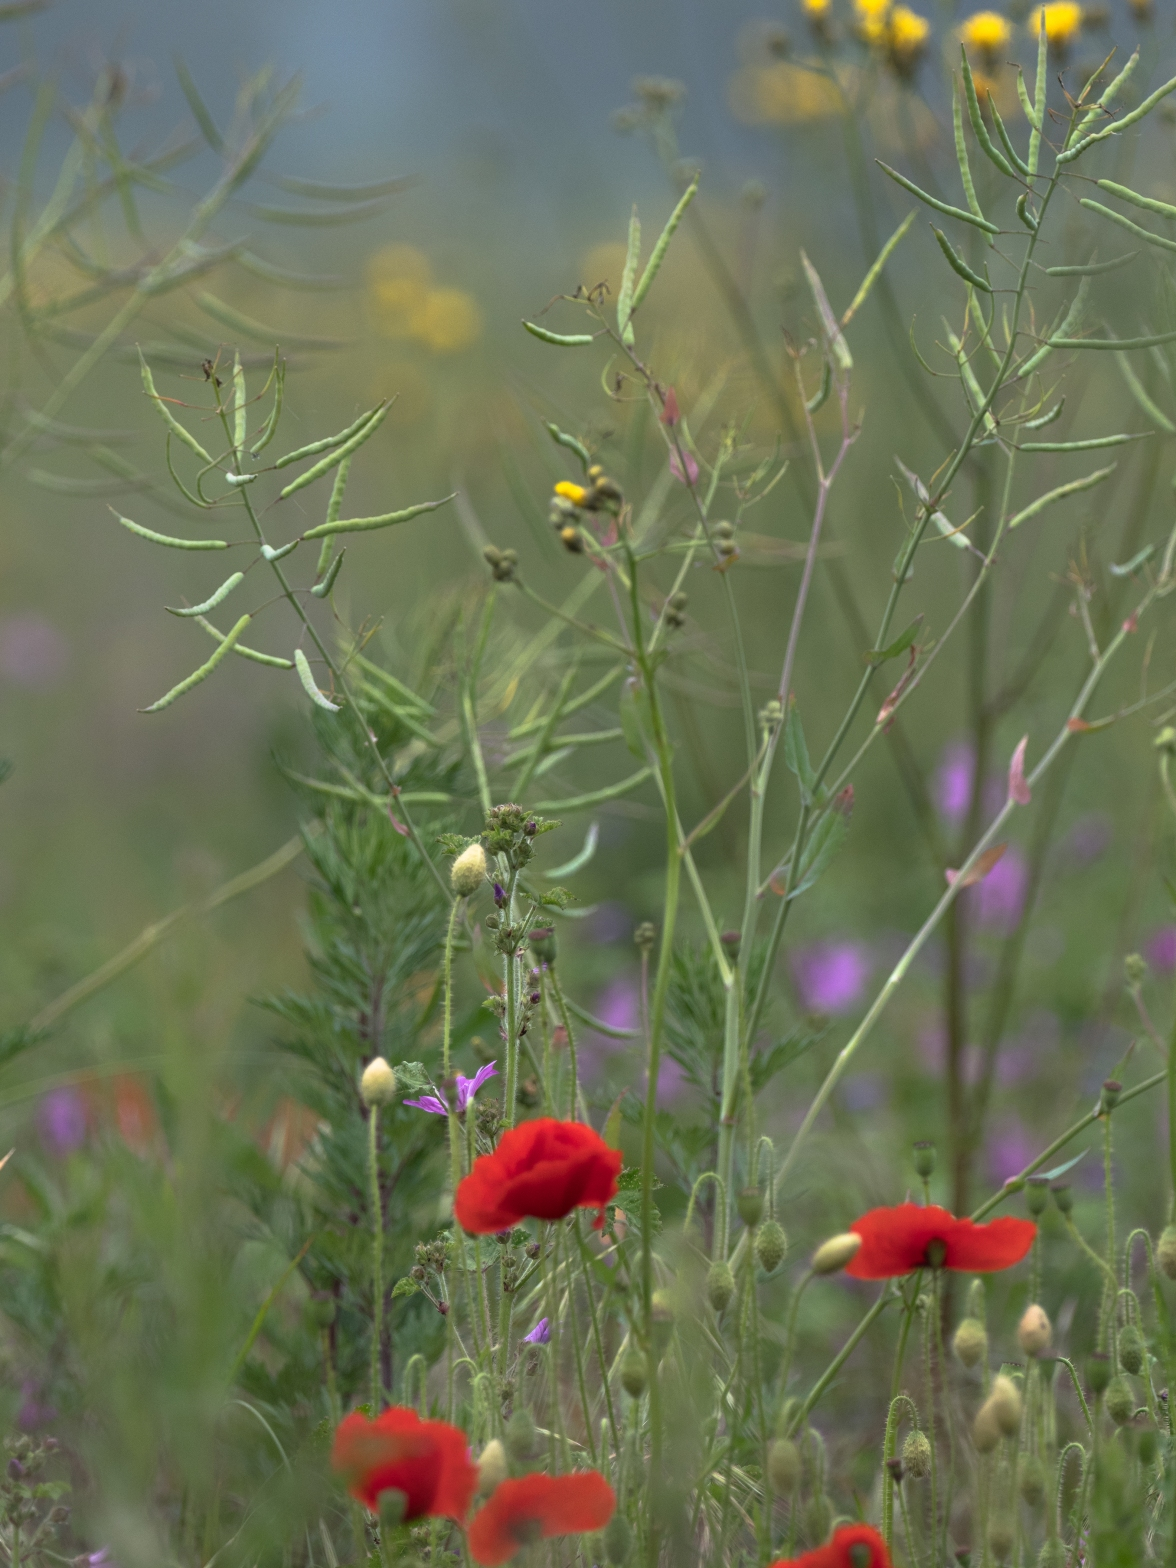 Arable weeds